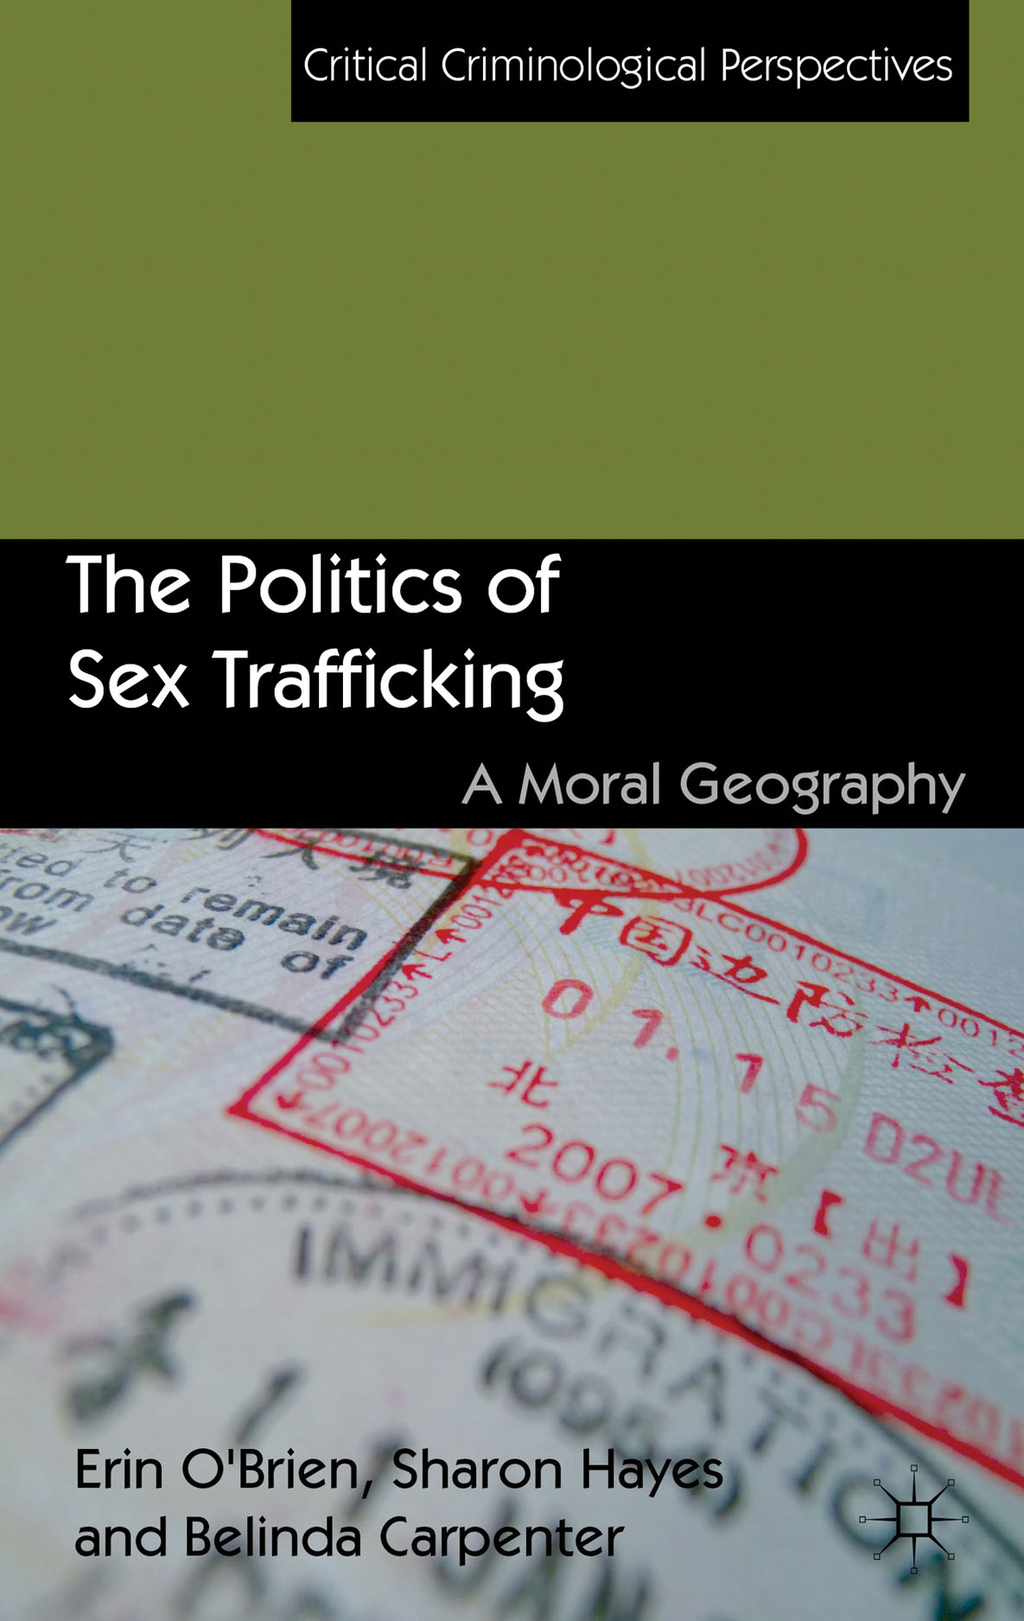 The Politics of Sex Trafficking A Moral Geography